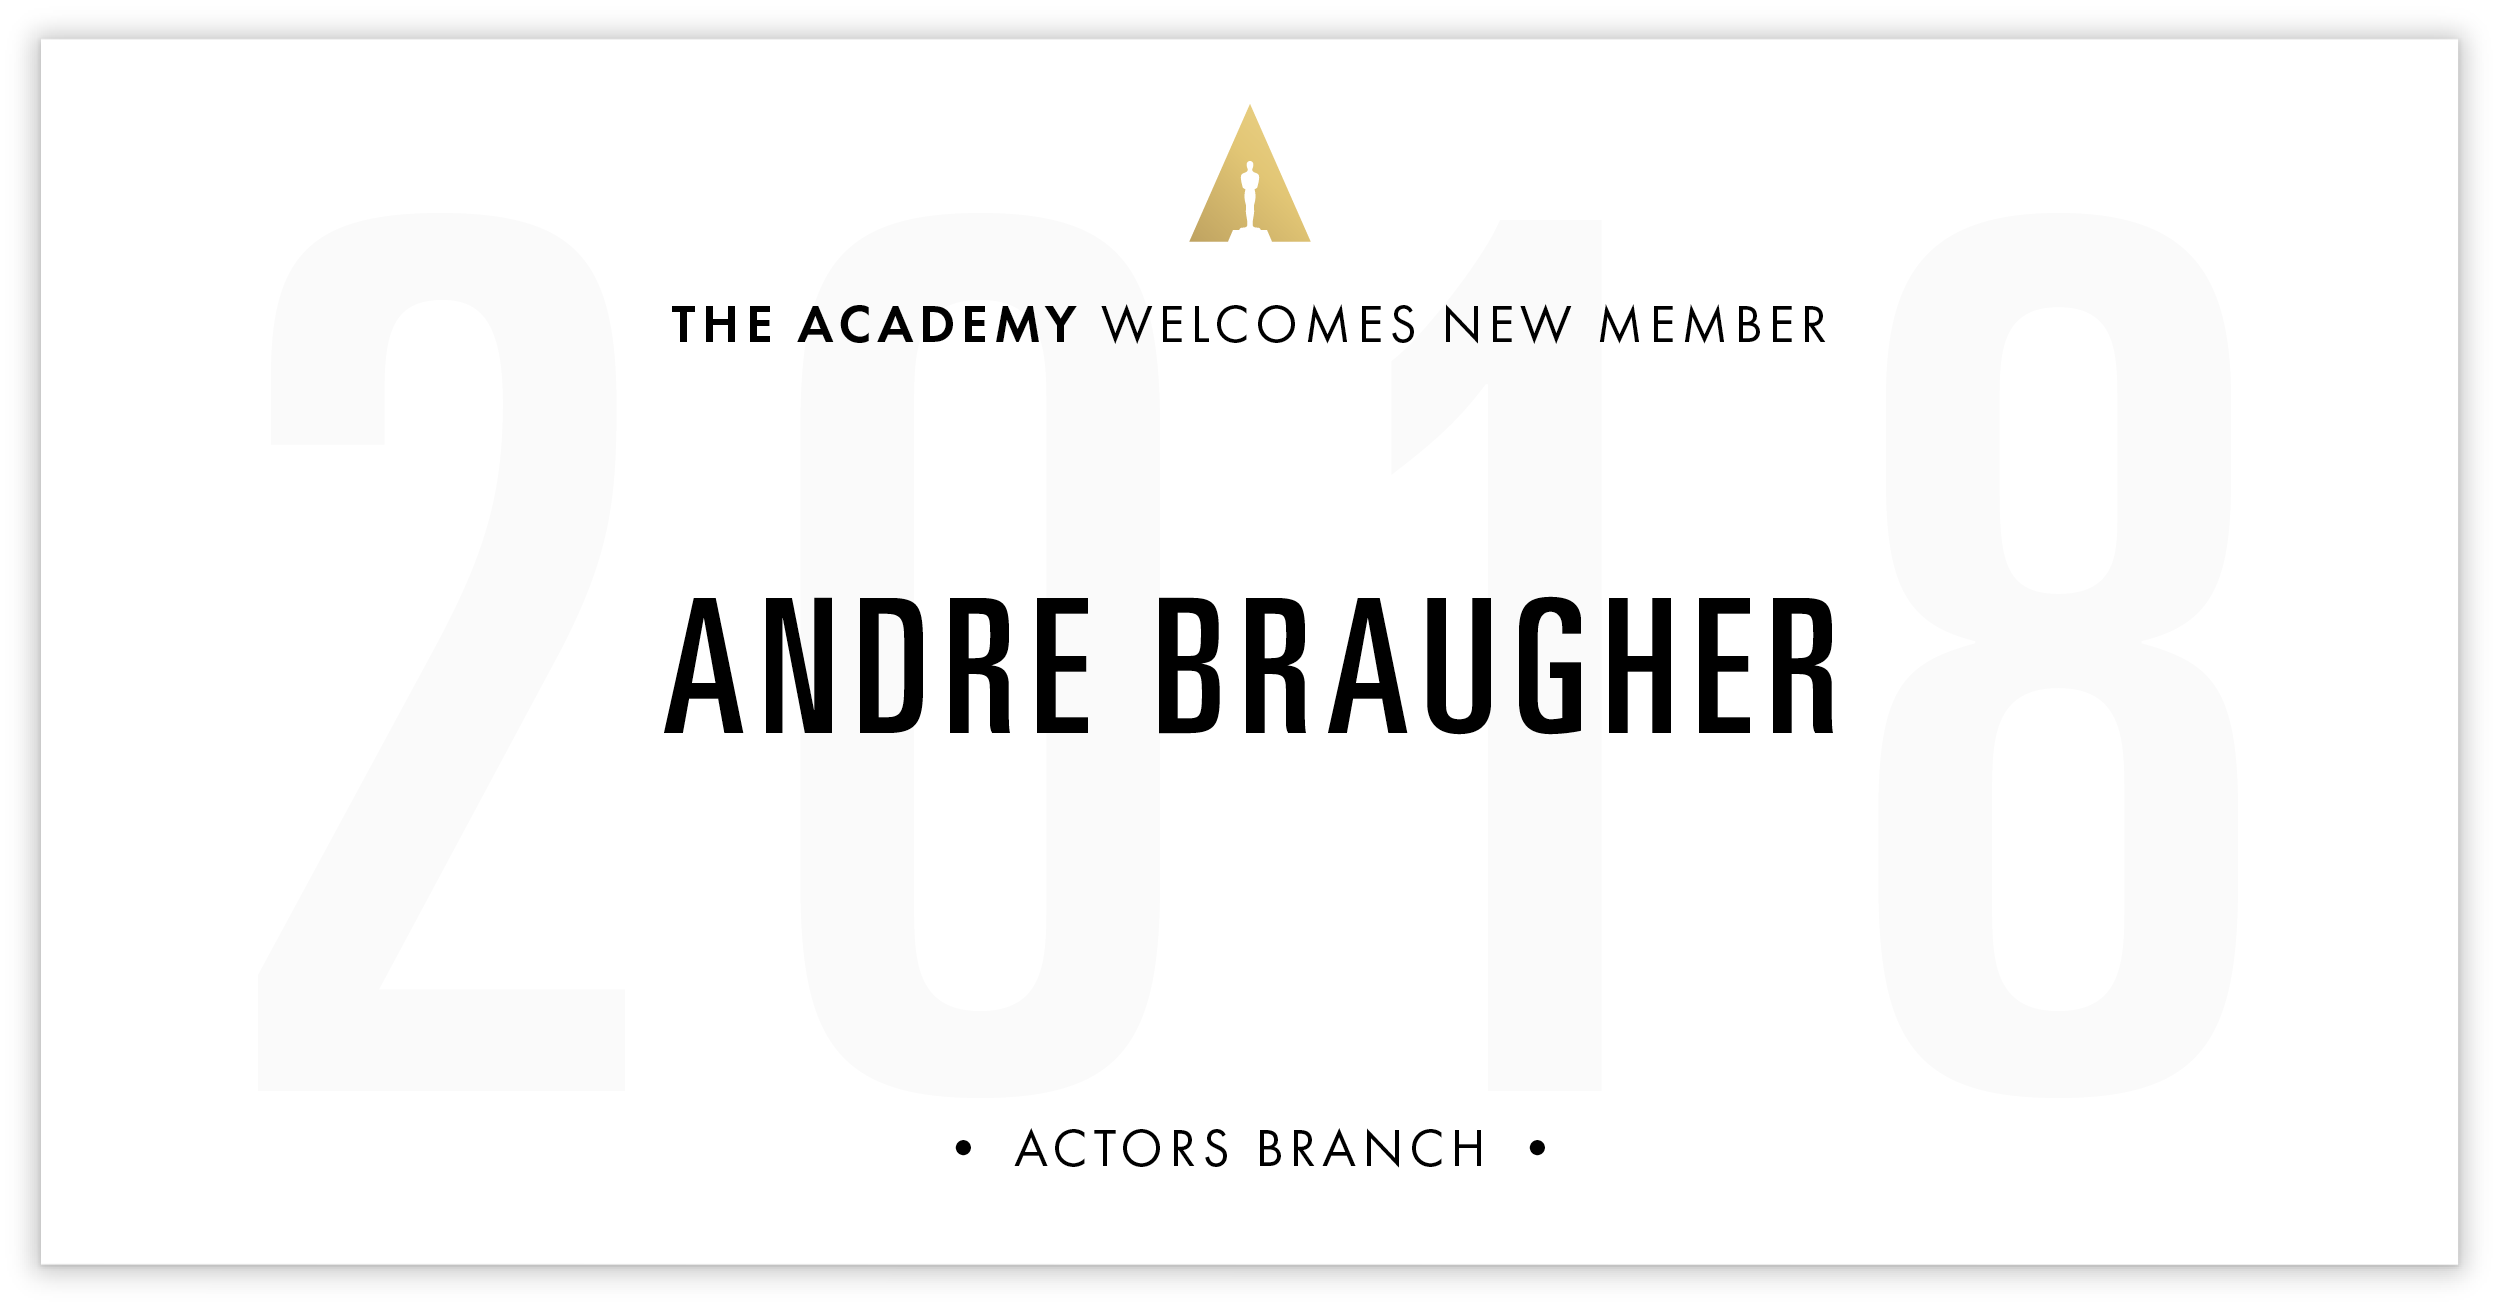 Andre Braugher is invited!